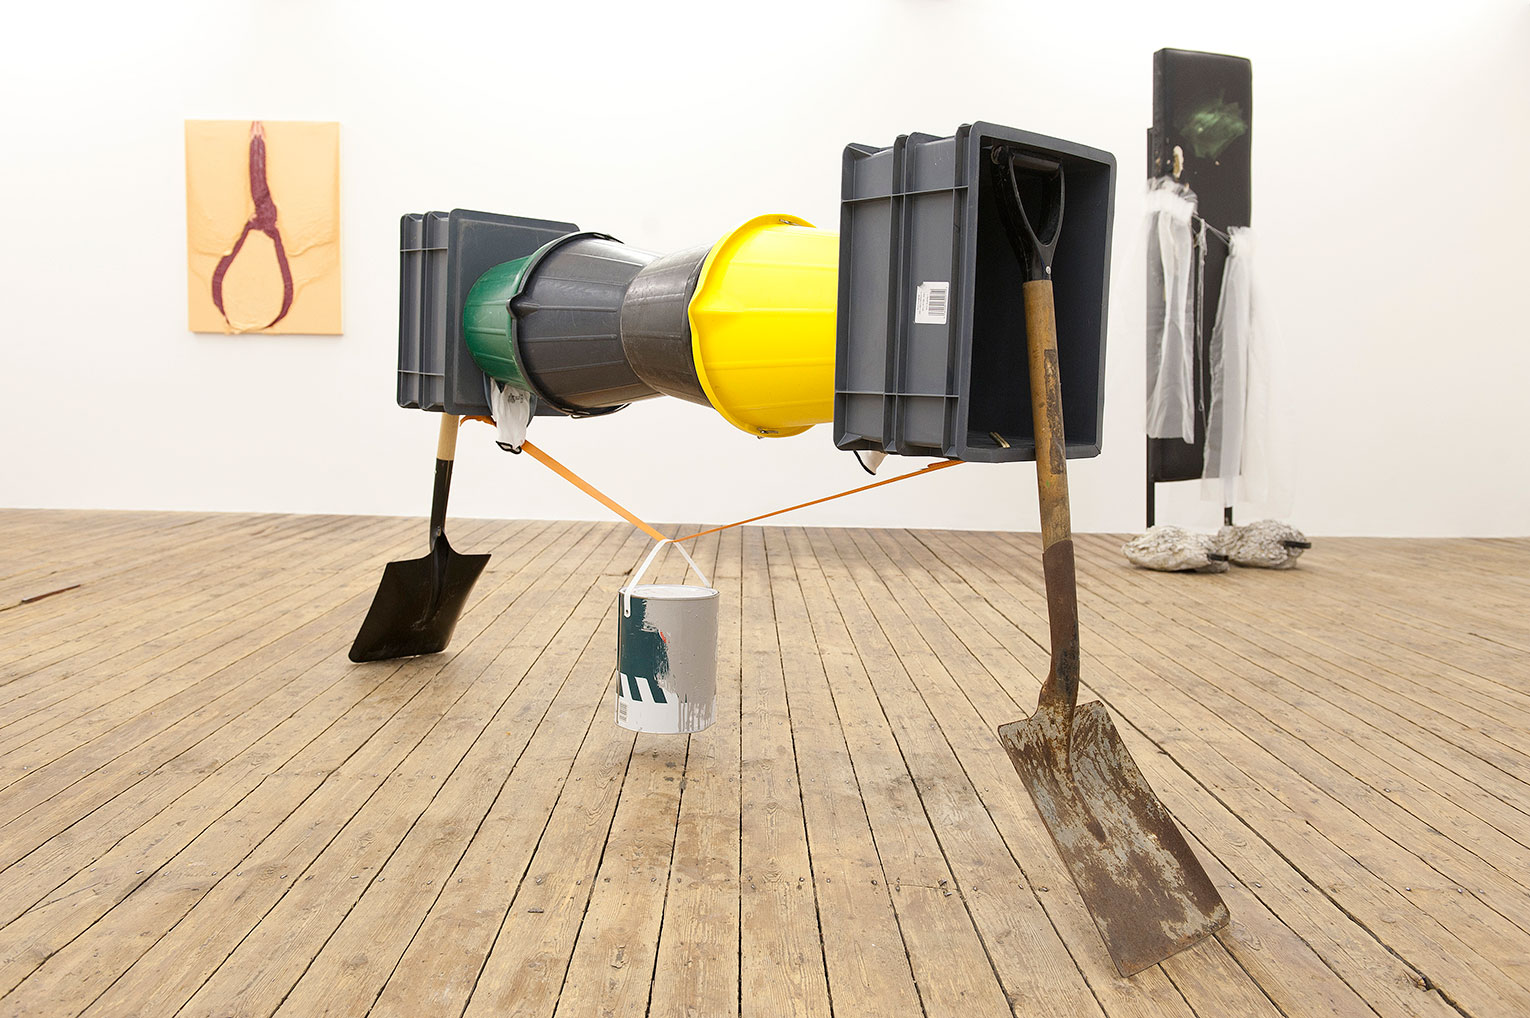 <b>Title: </b>Span<br /><b>Year: </b>2009<br /><b>Medium: </b>Shovels, buckets, plastic crates, gloves, nylon strap<br /><b>Size: </b>200 x 35 x 100 cm